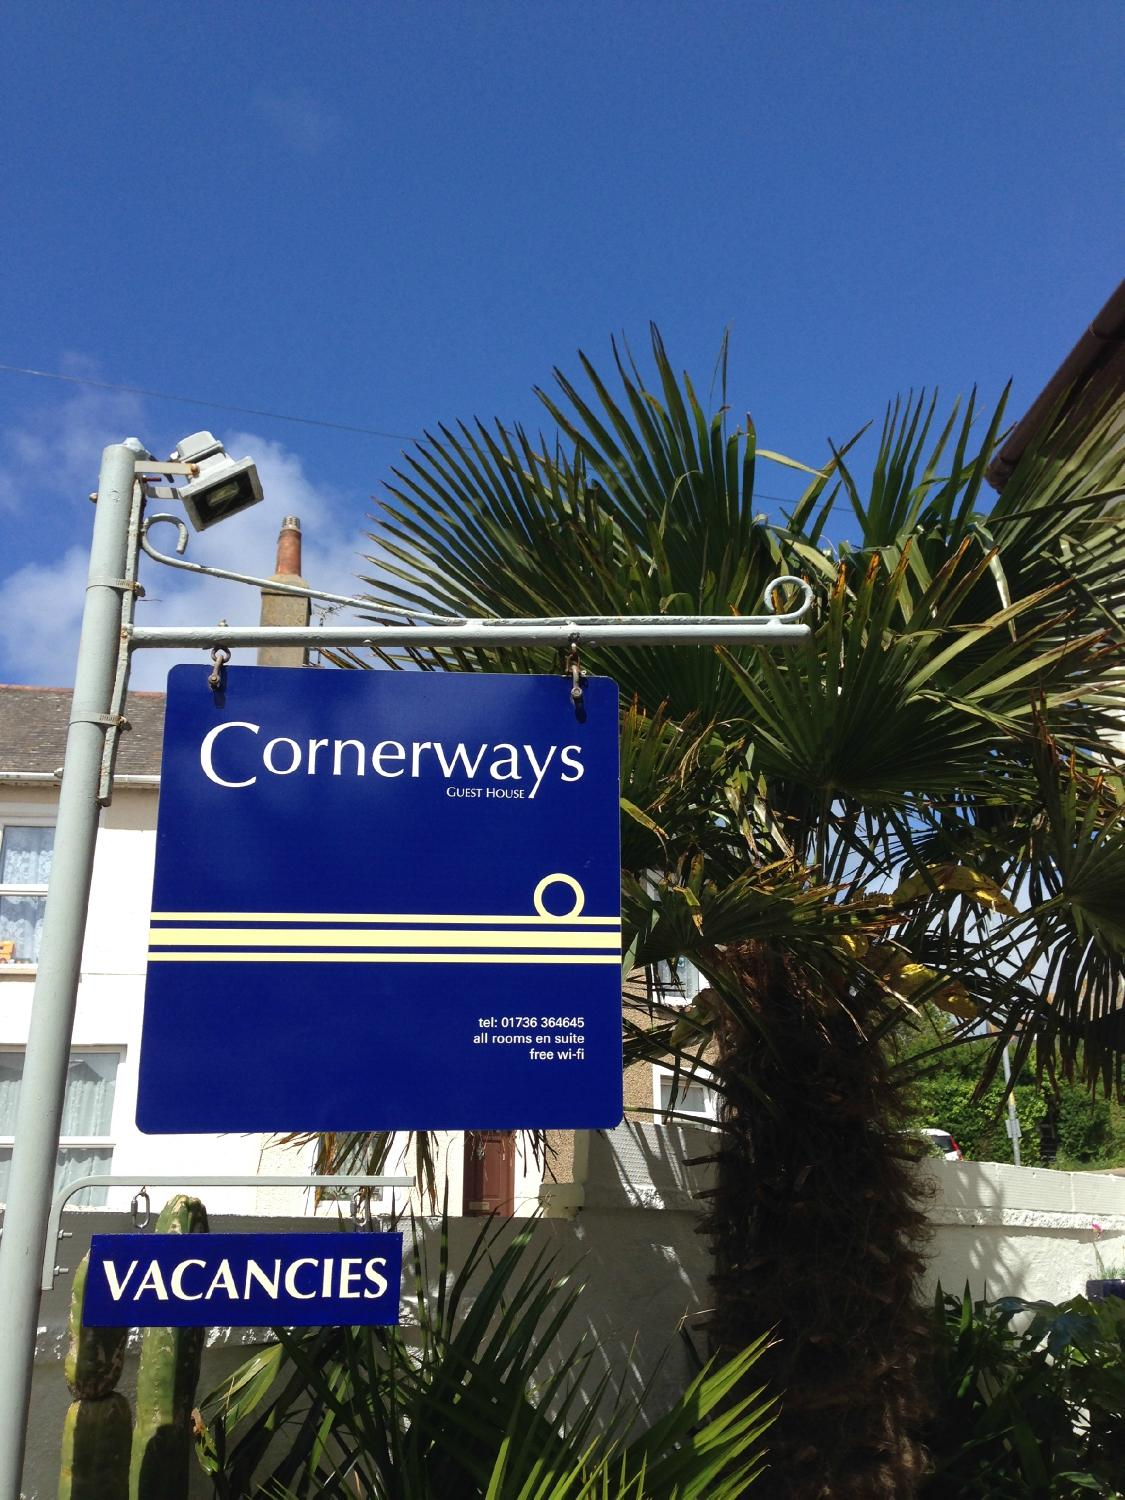 Cornerways Guest House